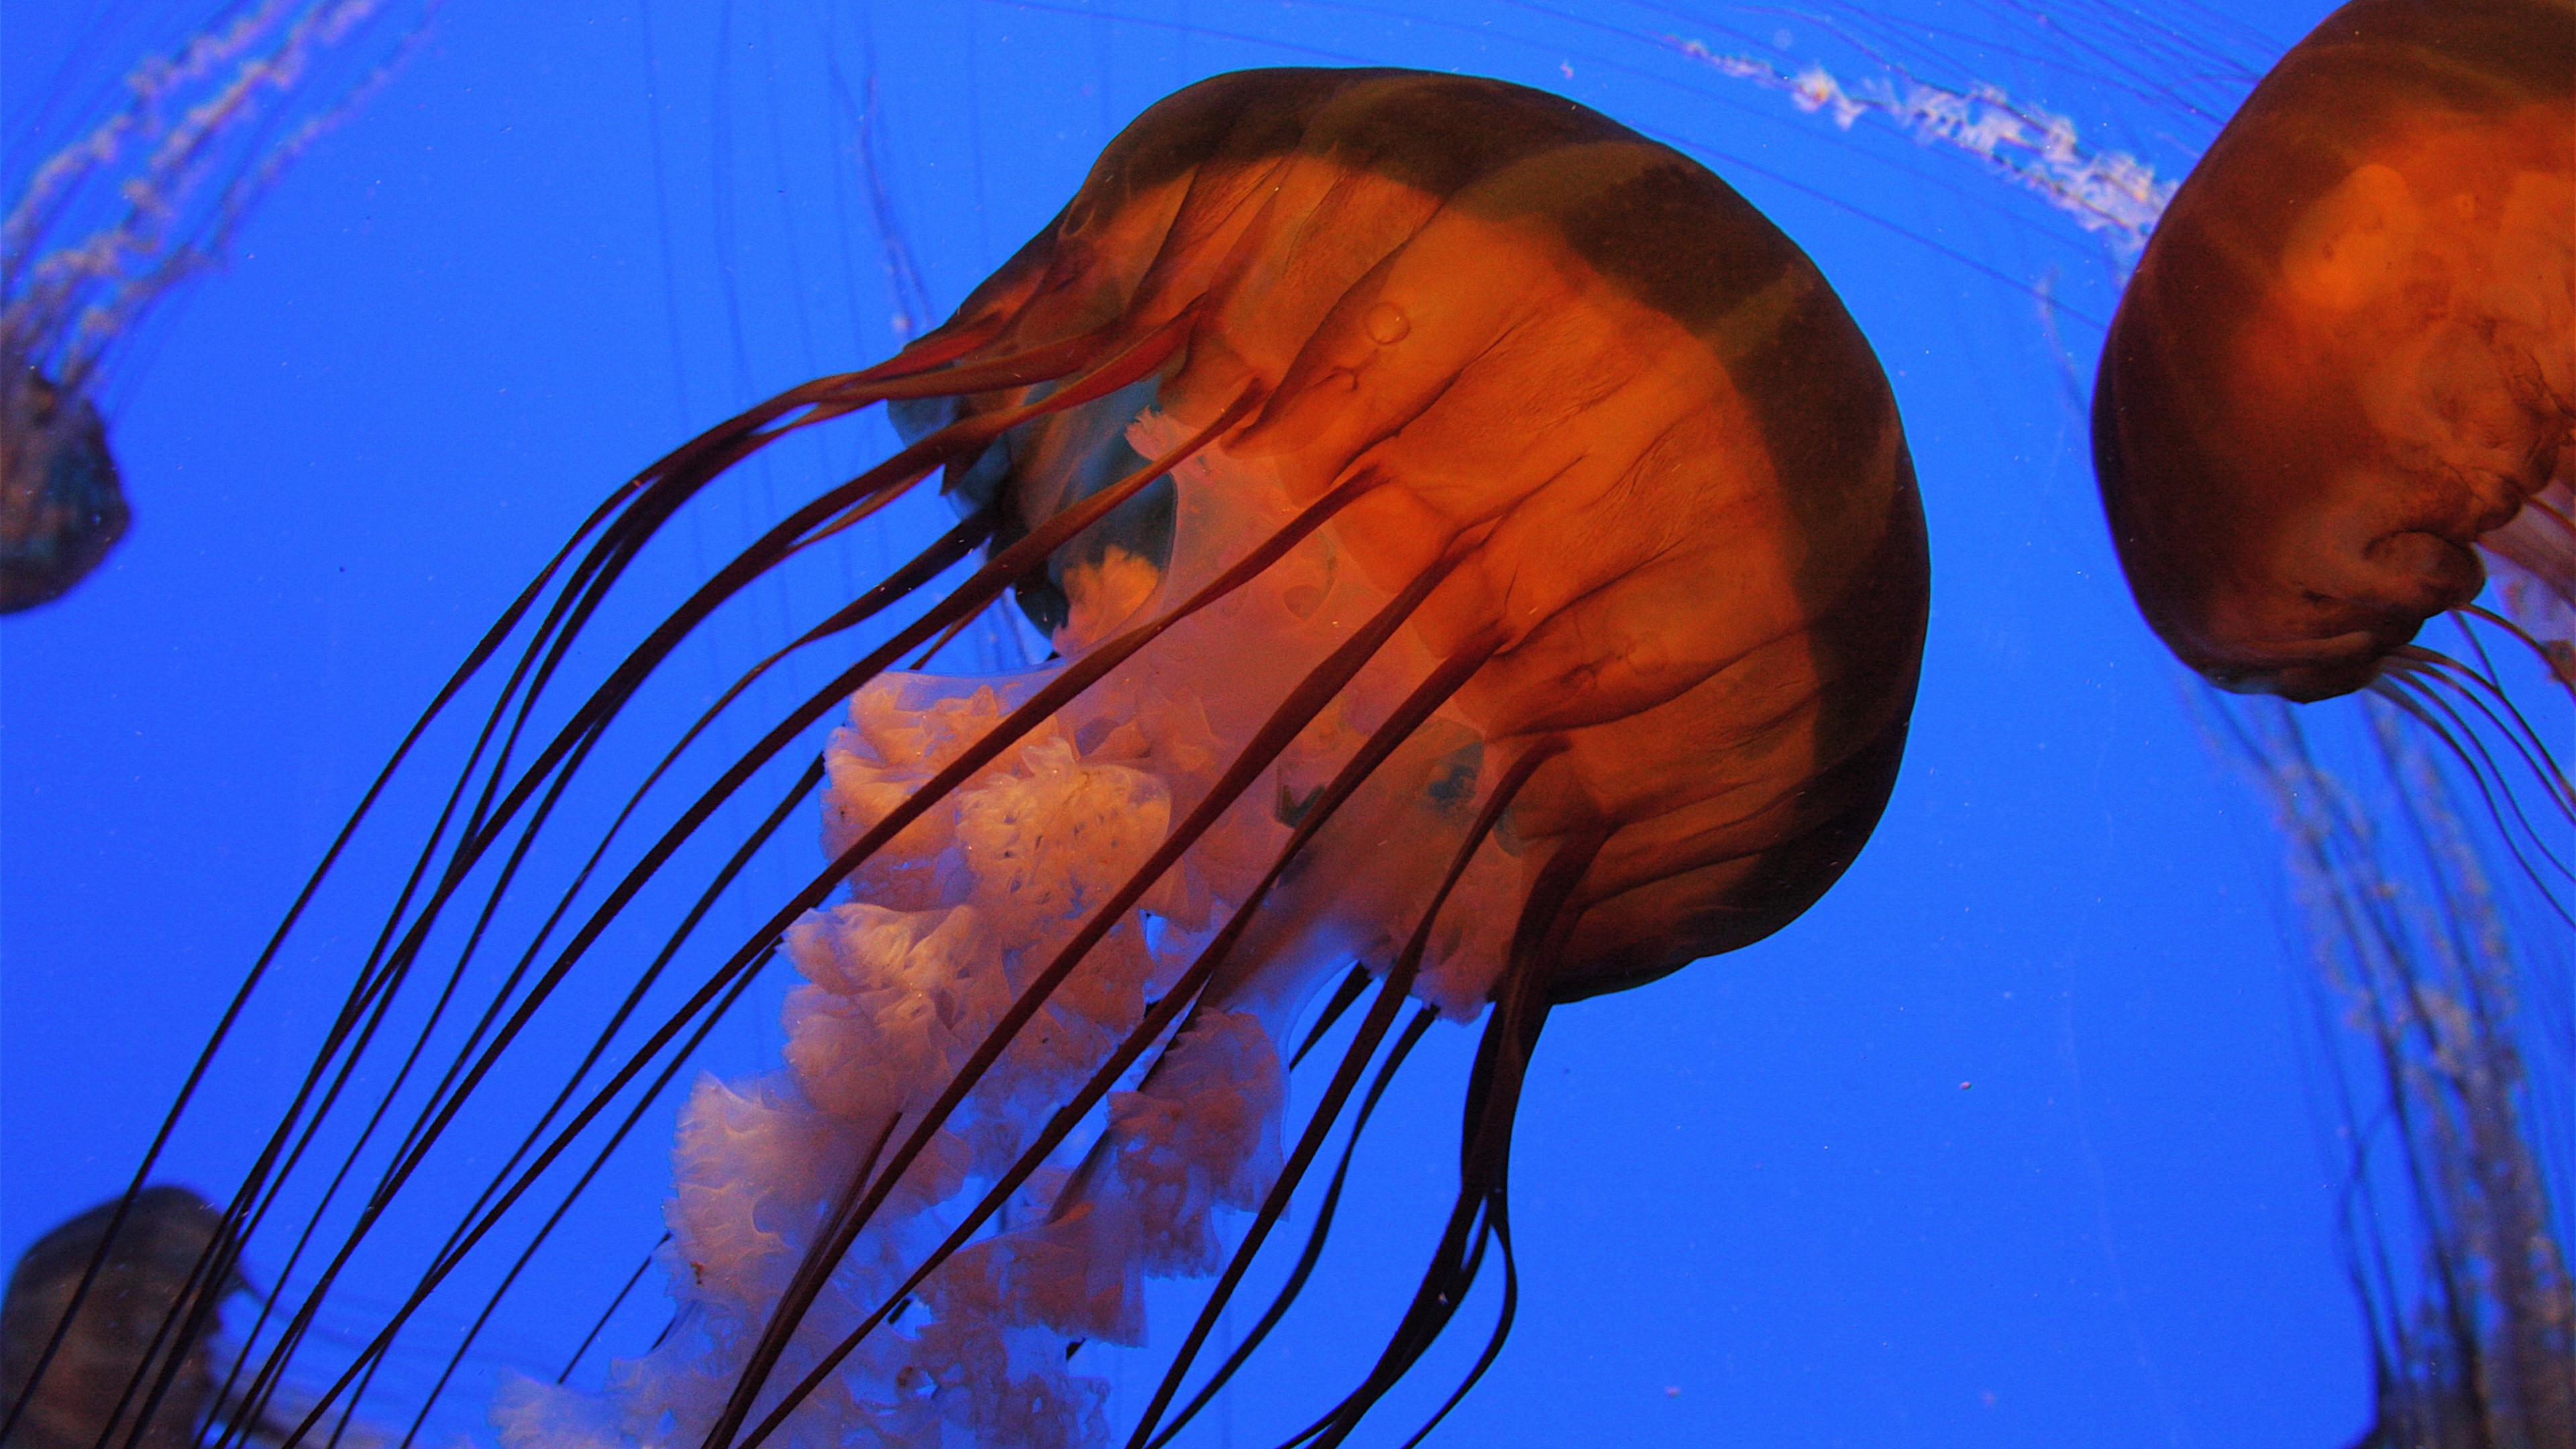 Best Quotes From The Yellow Wallpaper Wallpaper Jellyfish 4k 5k Wallpaper Pacific Sea Nettle